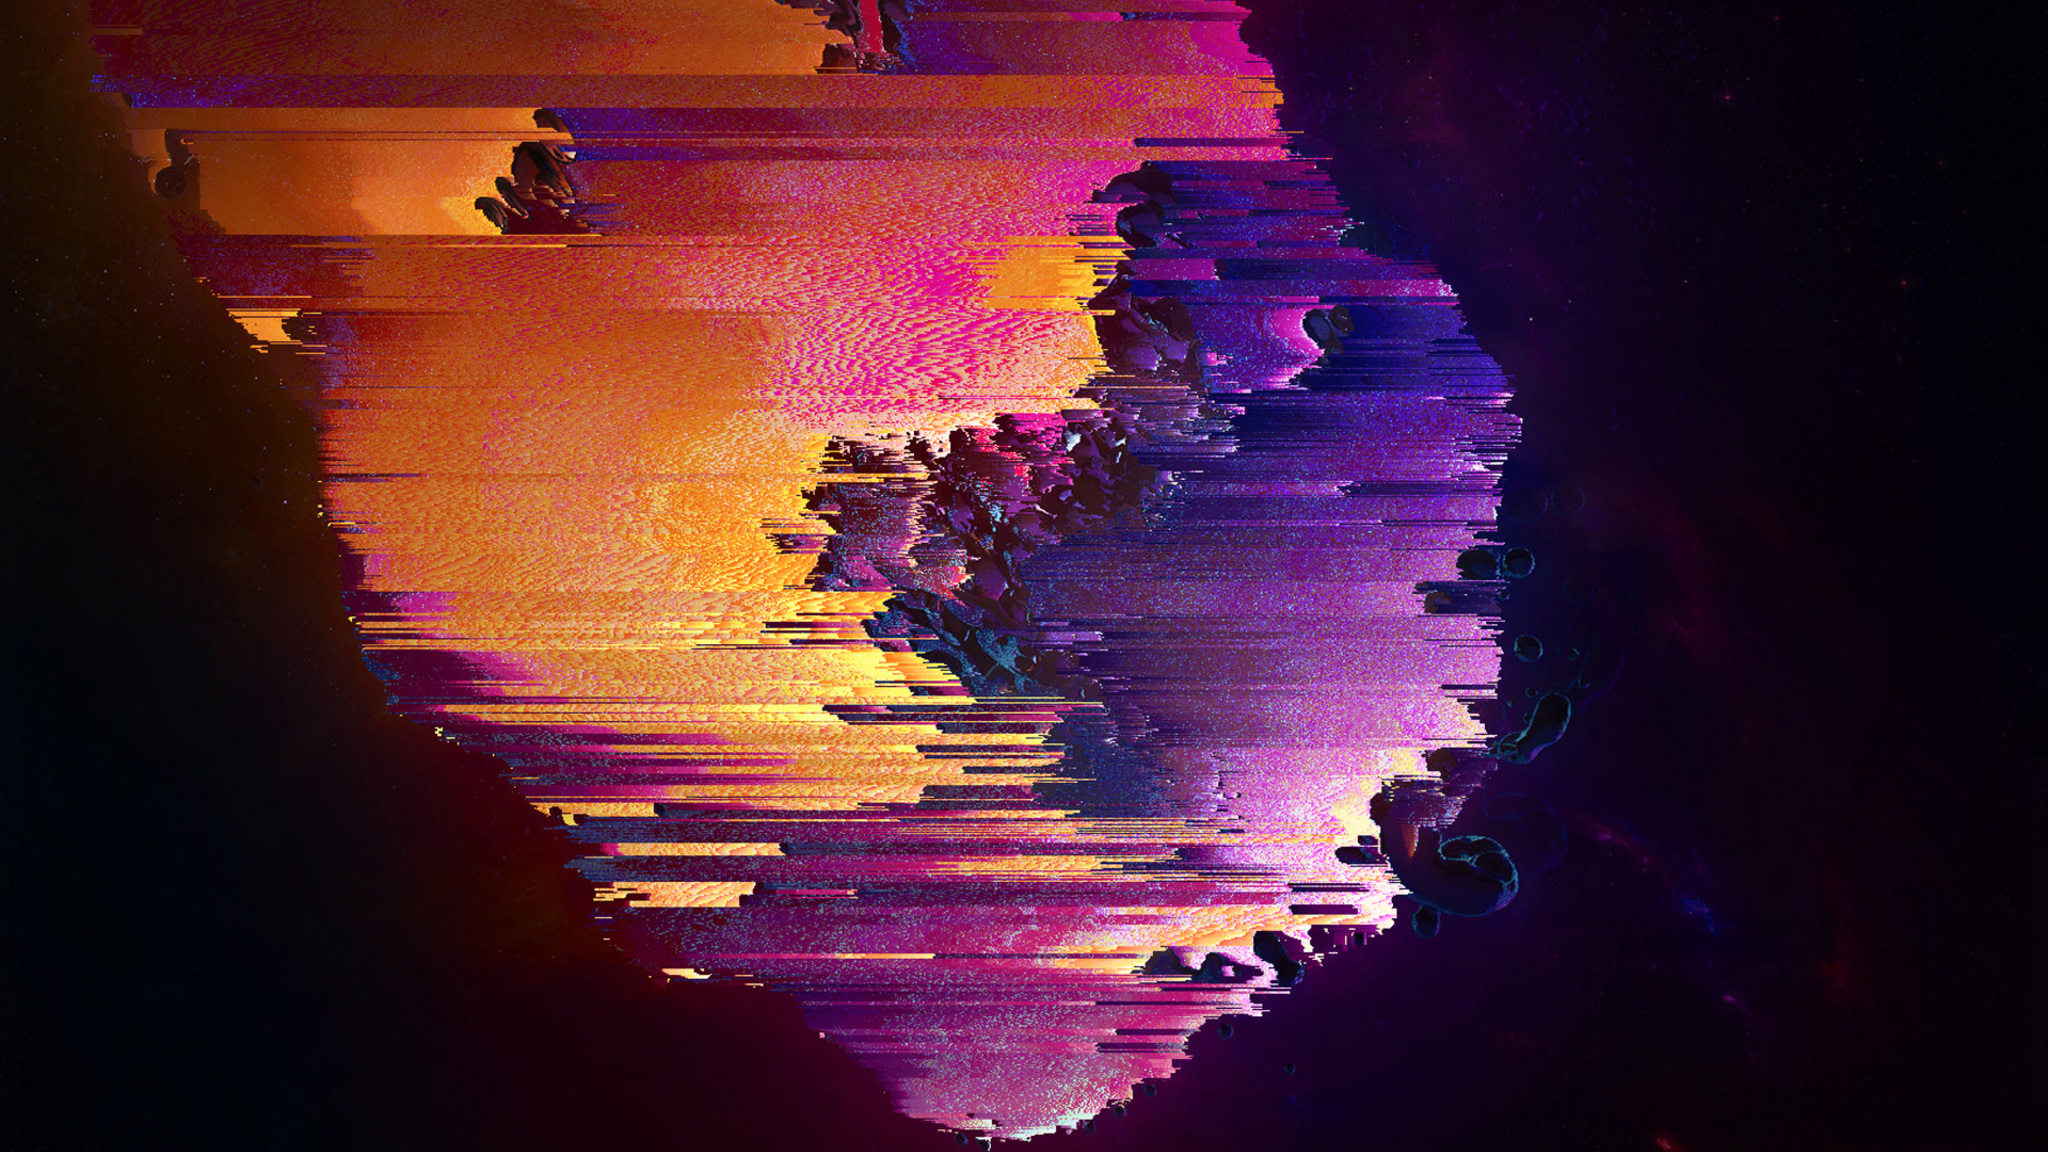 2048x1152 Pixels Glitch Abstract 2048x1152 Resolution Hd 4k